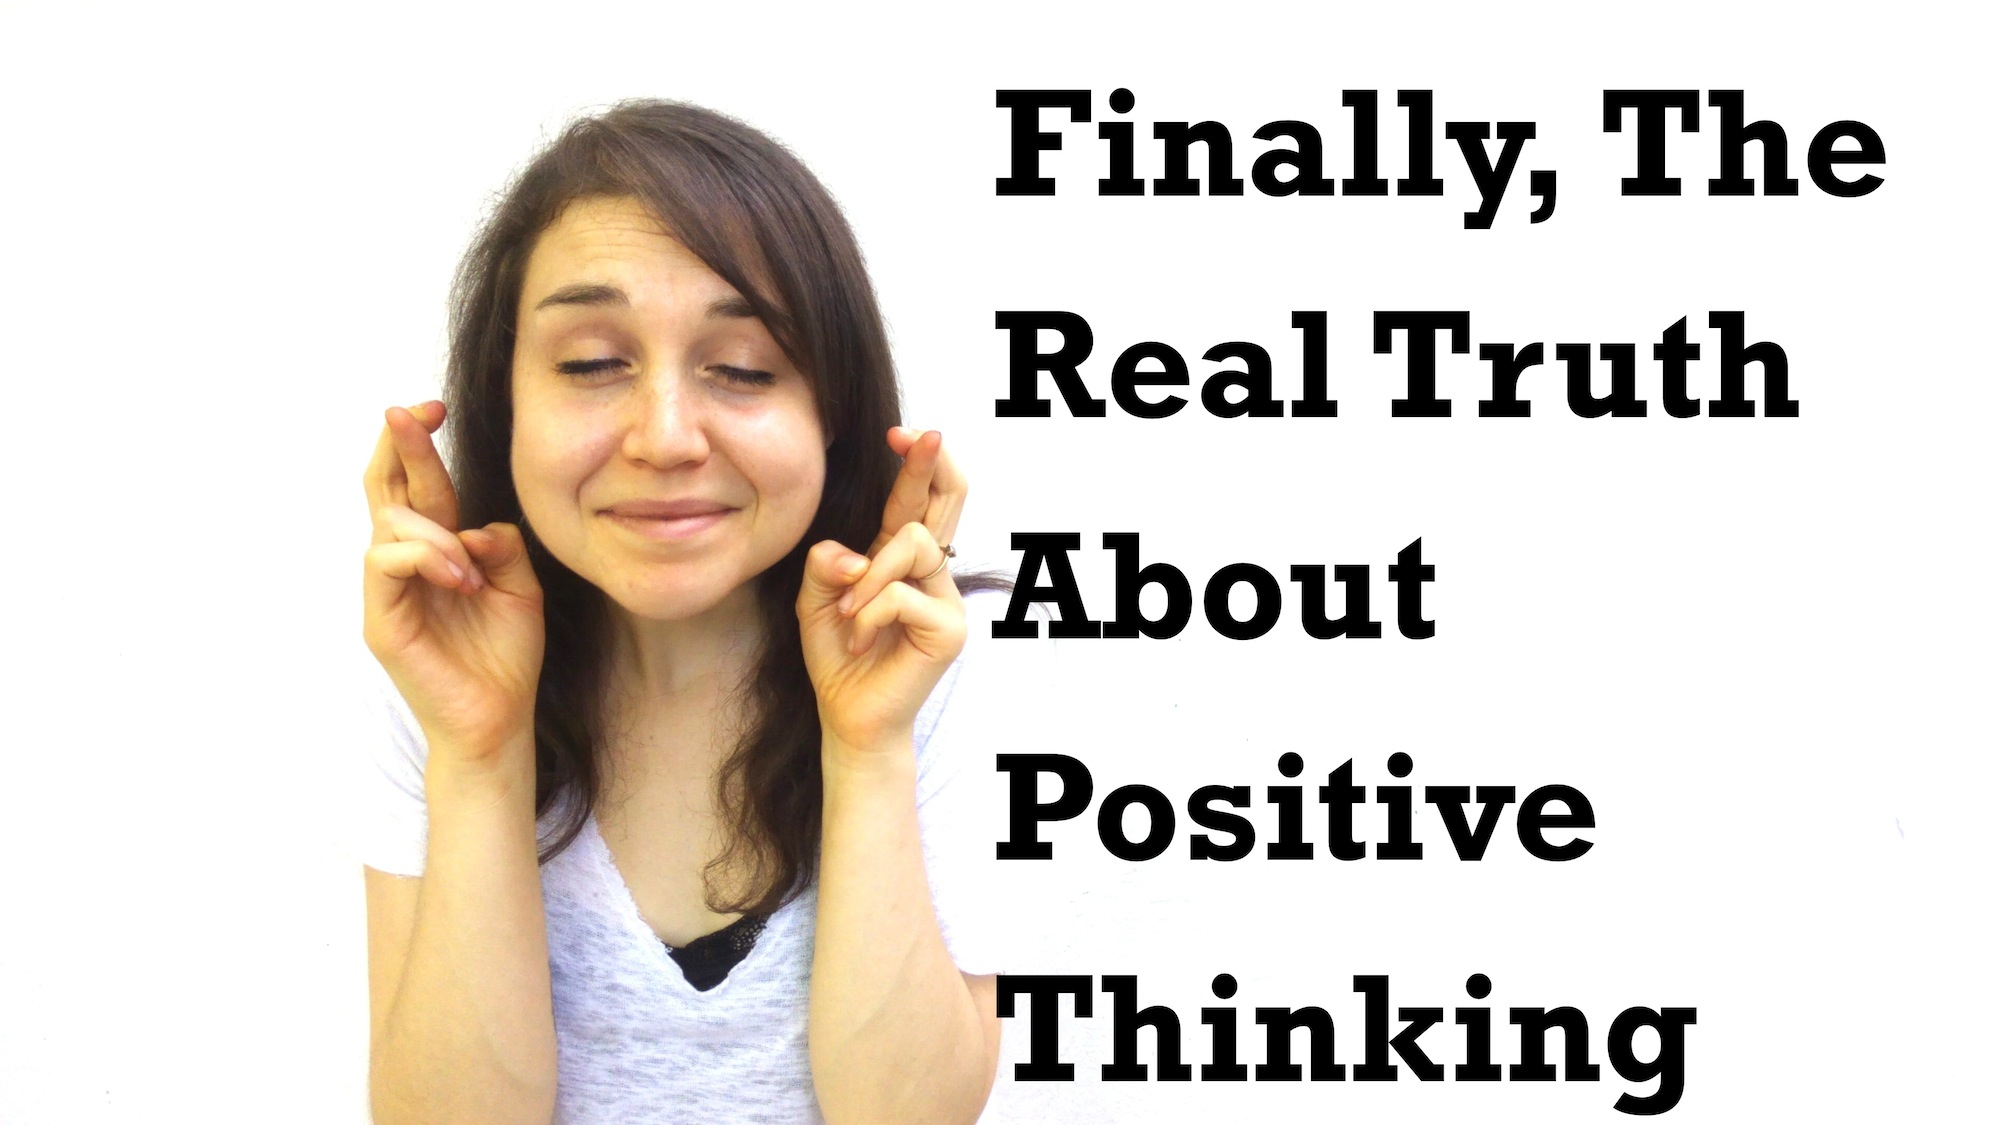 The Real Truth About Positive Thinking.